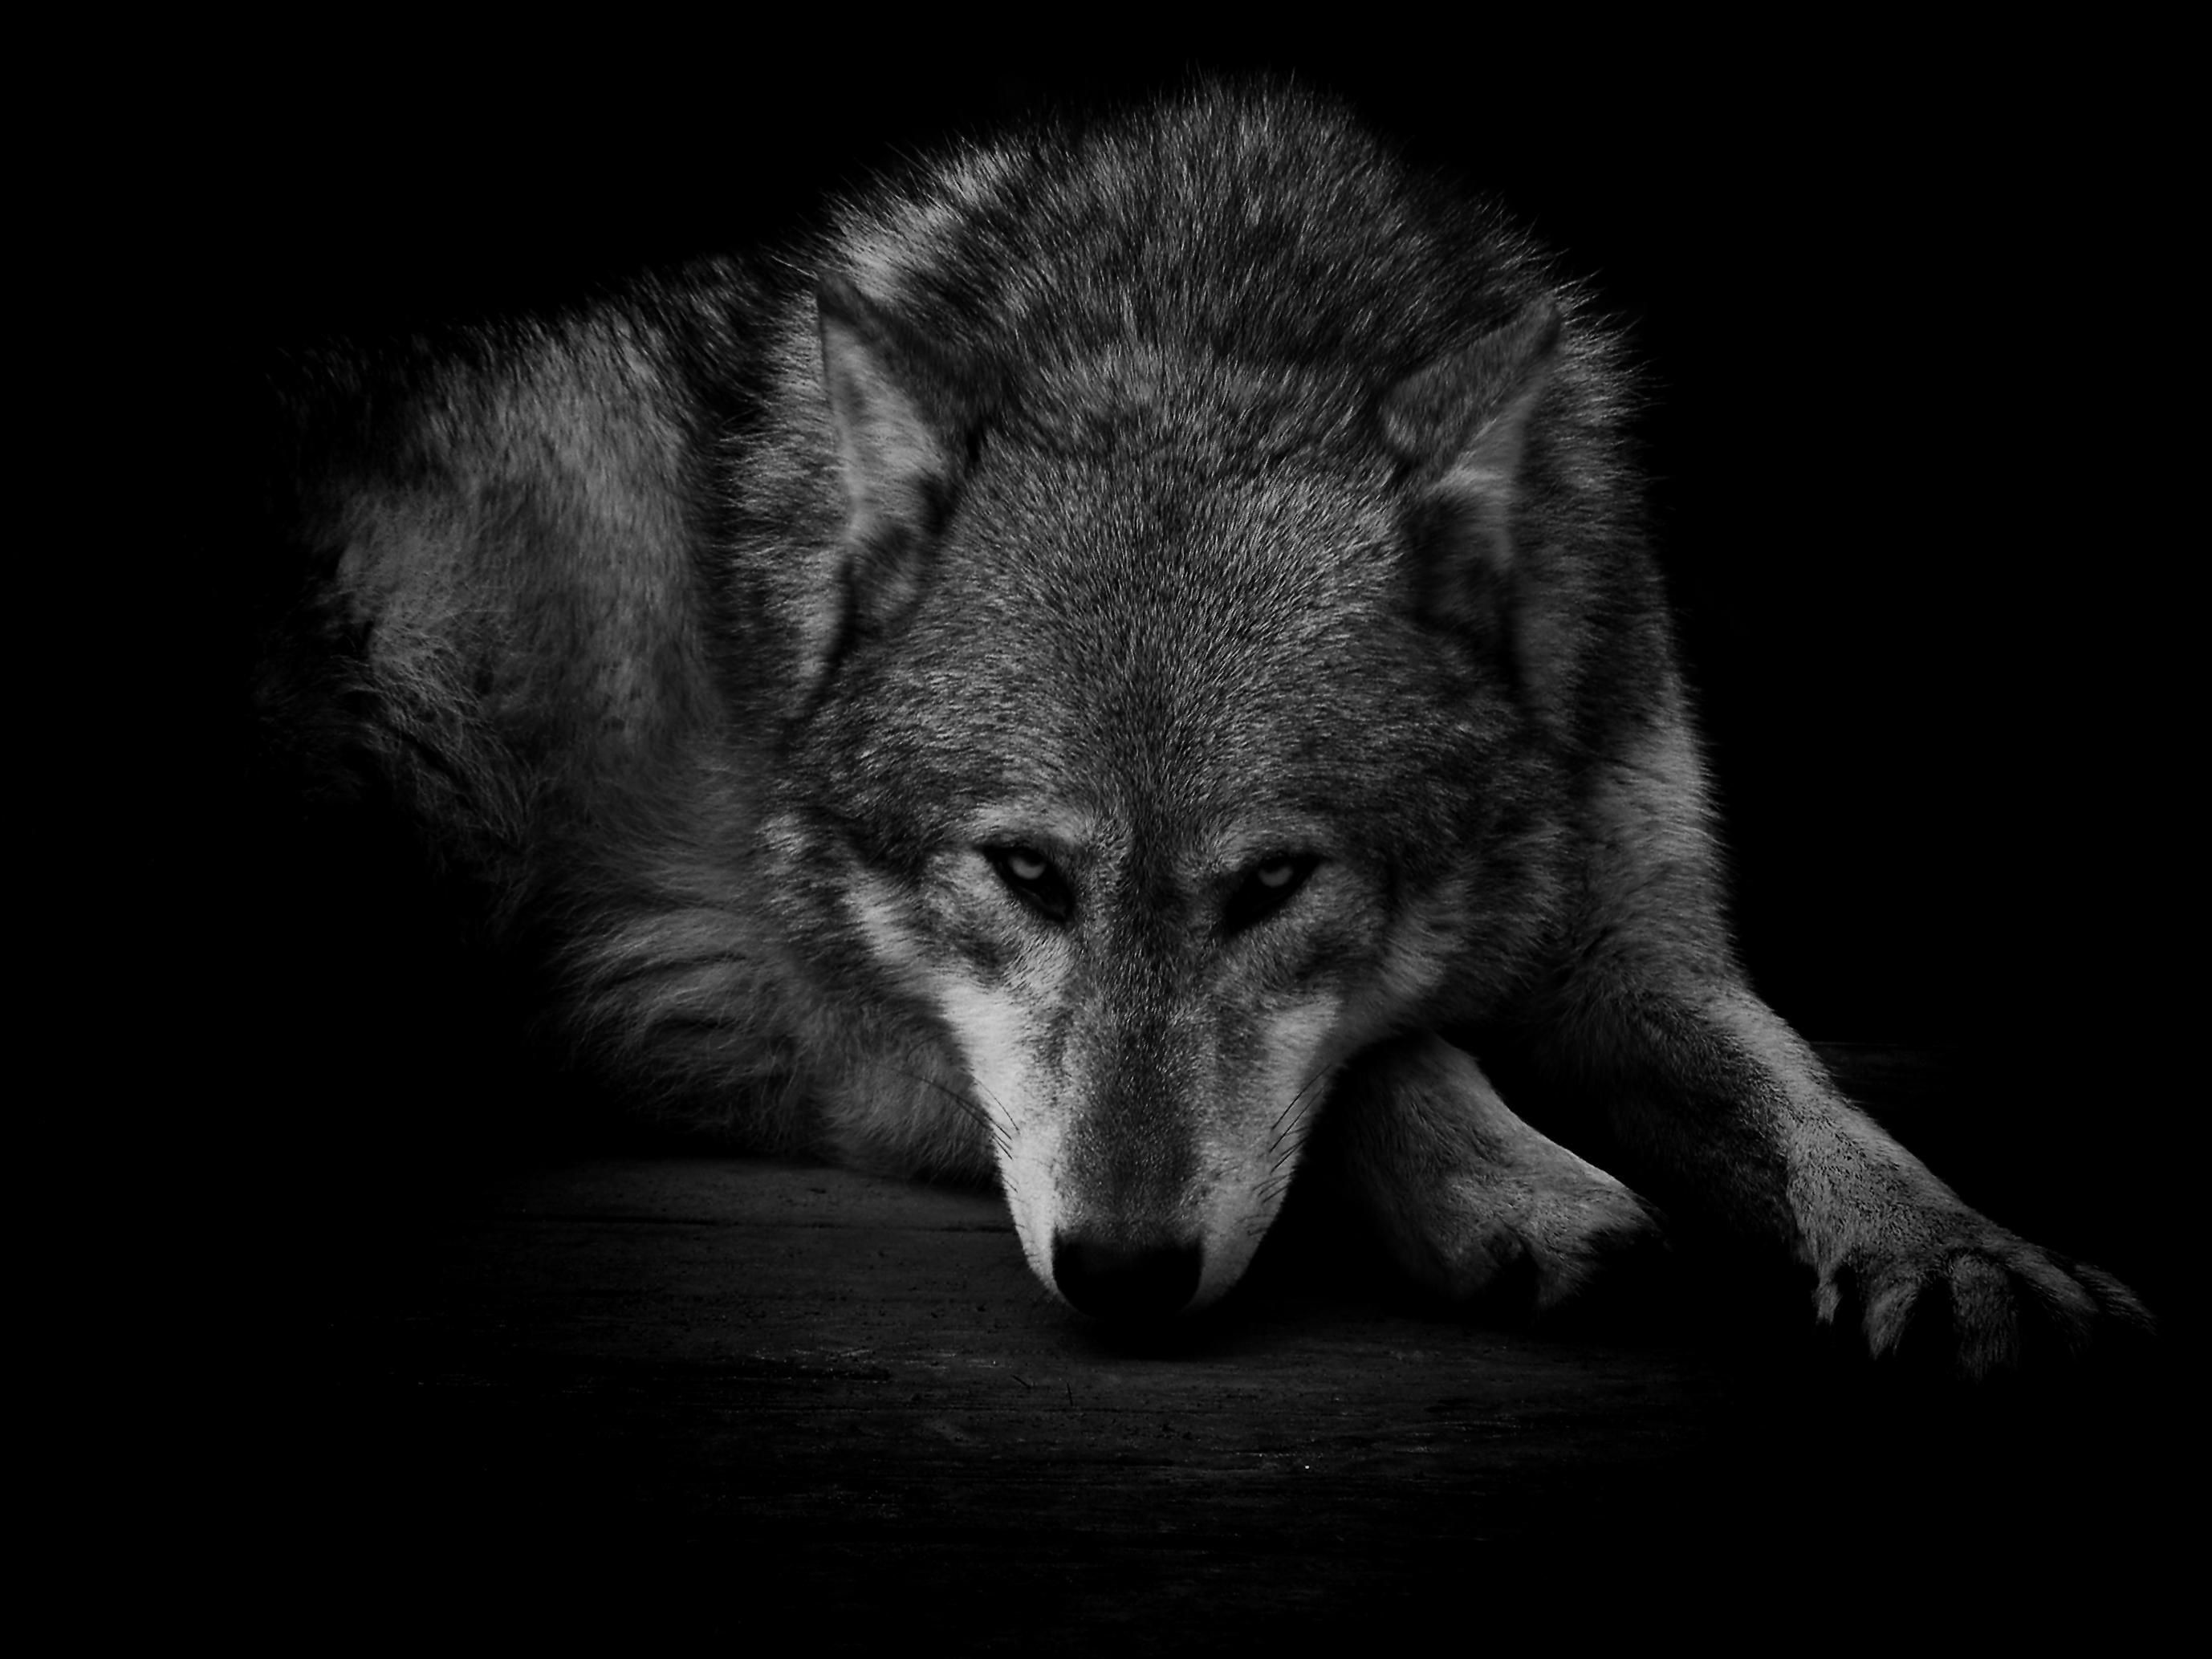 Black Wolf Wallpaper Black Wolf Wallpapers ①